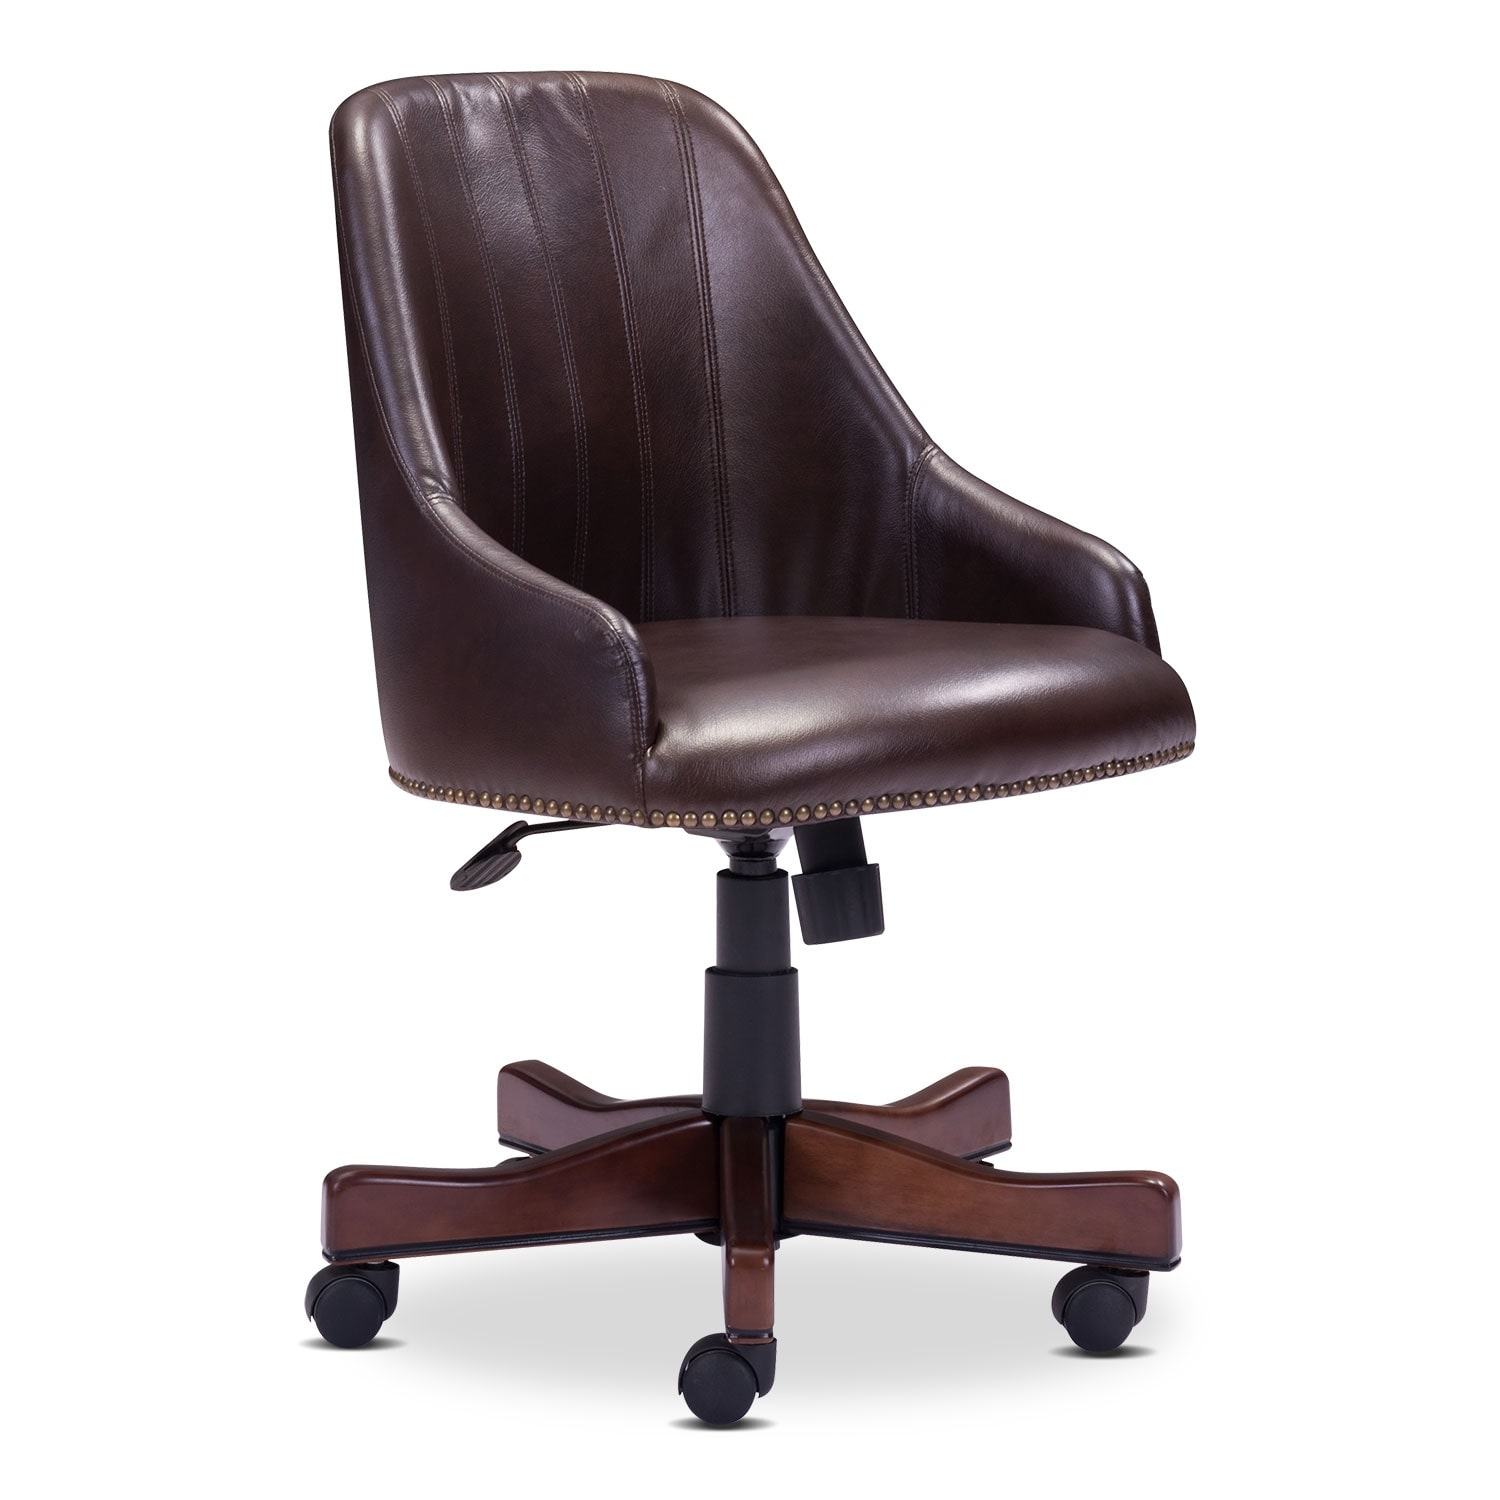 Saddle Office Arm Chair - Brown